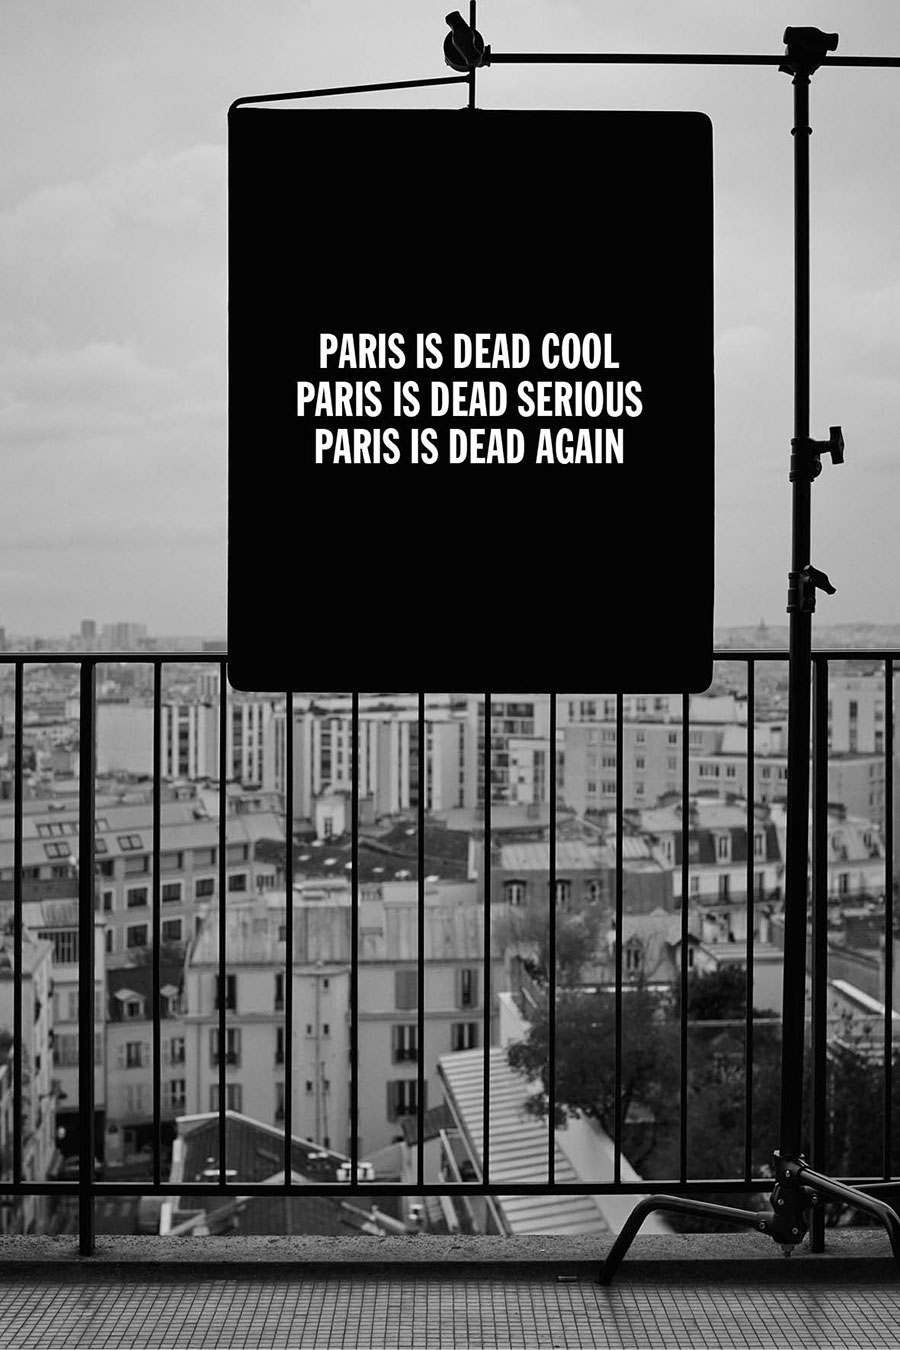 Paris Is Dead Season 2 by René Habermacher - Paris Is Dead COOL / SERIOUS / AGAIN.